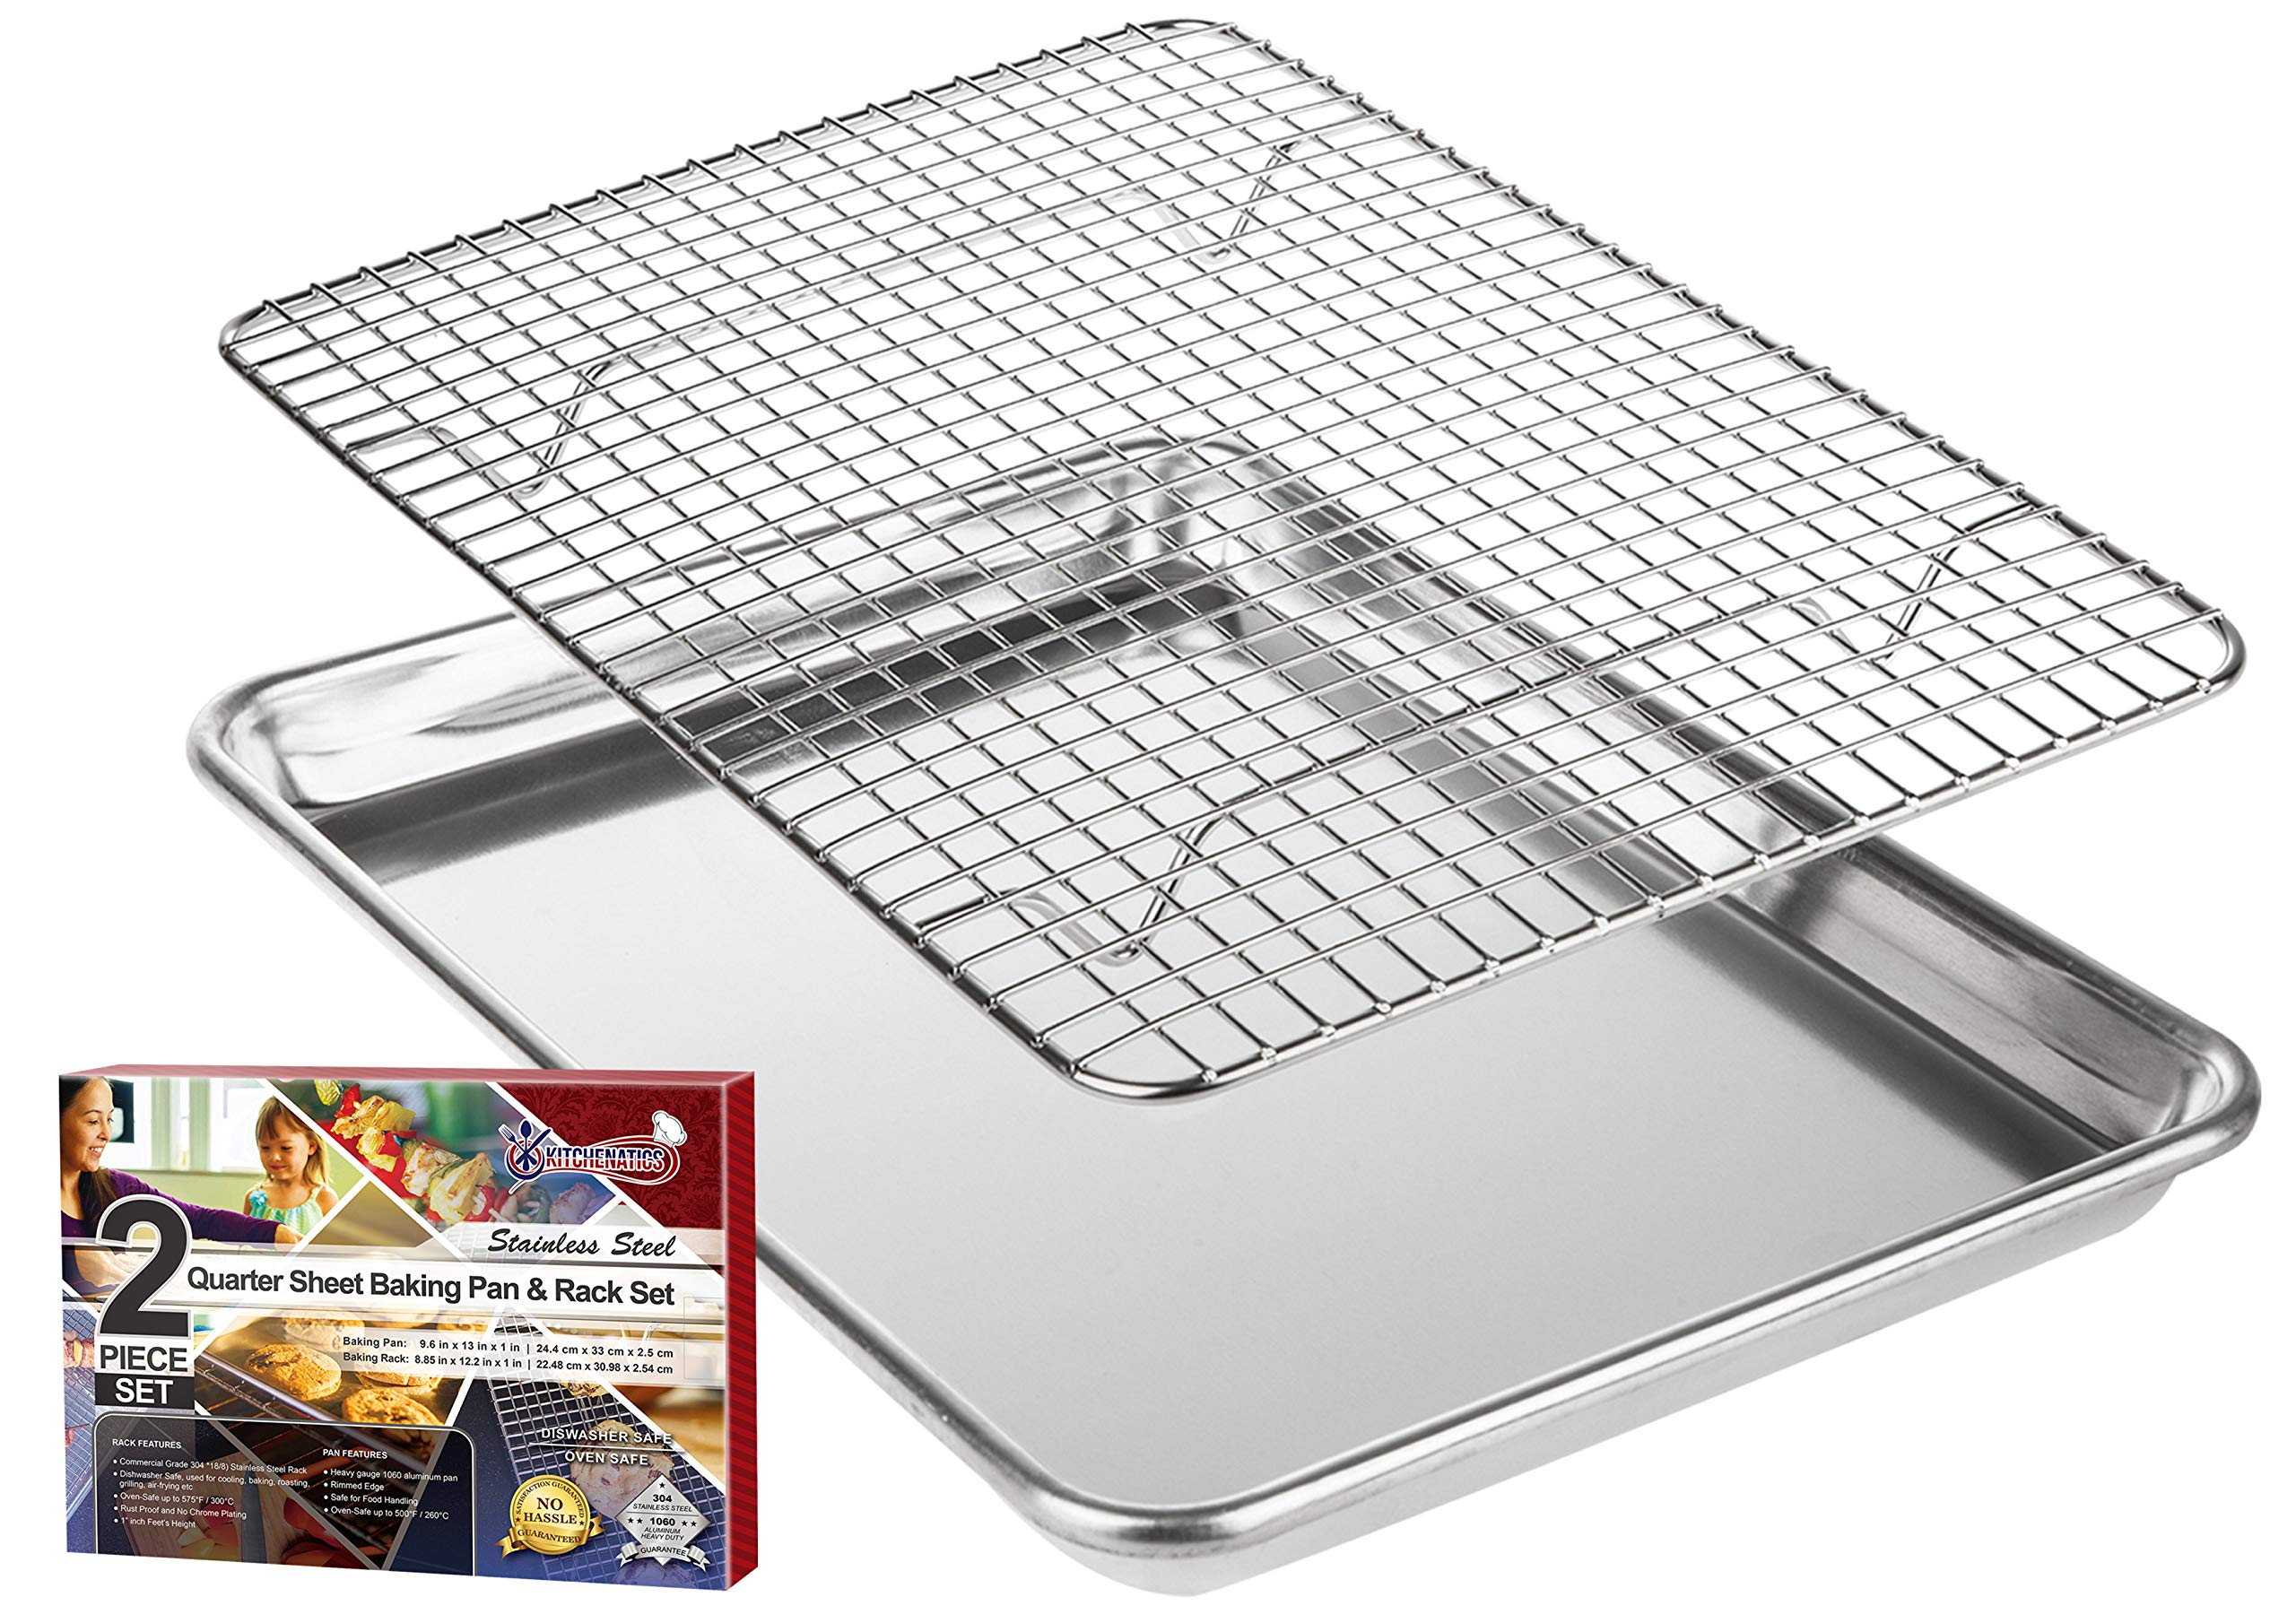 "KITCHENATICS Roasting & Baking Sheet with Cooling Rack: Quarter Aluminum Cookie Pan Tray with Stainless Steel Wire Rack - 9.6'' x 13"", Heavy Duty Quality, Oven Safe and Non Toxic"